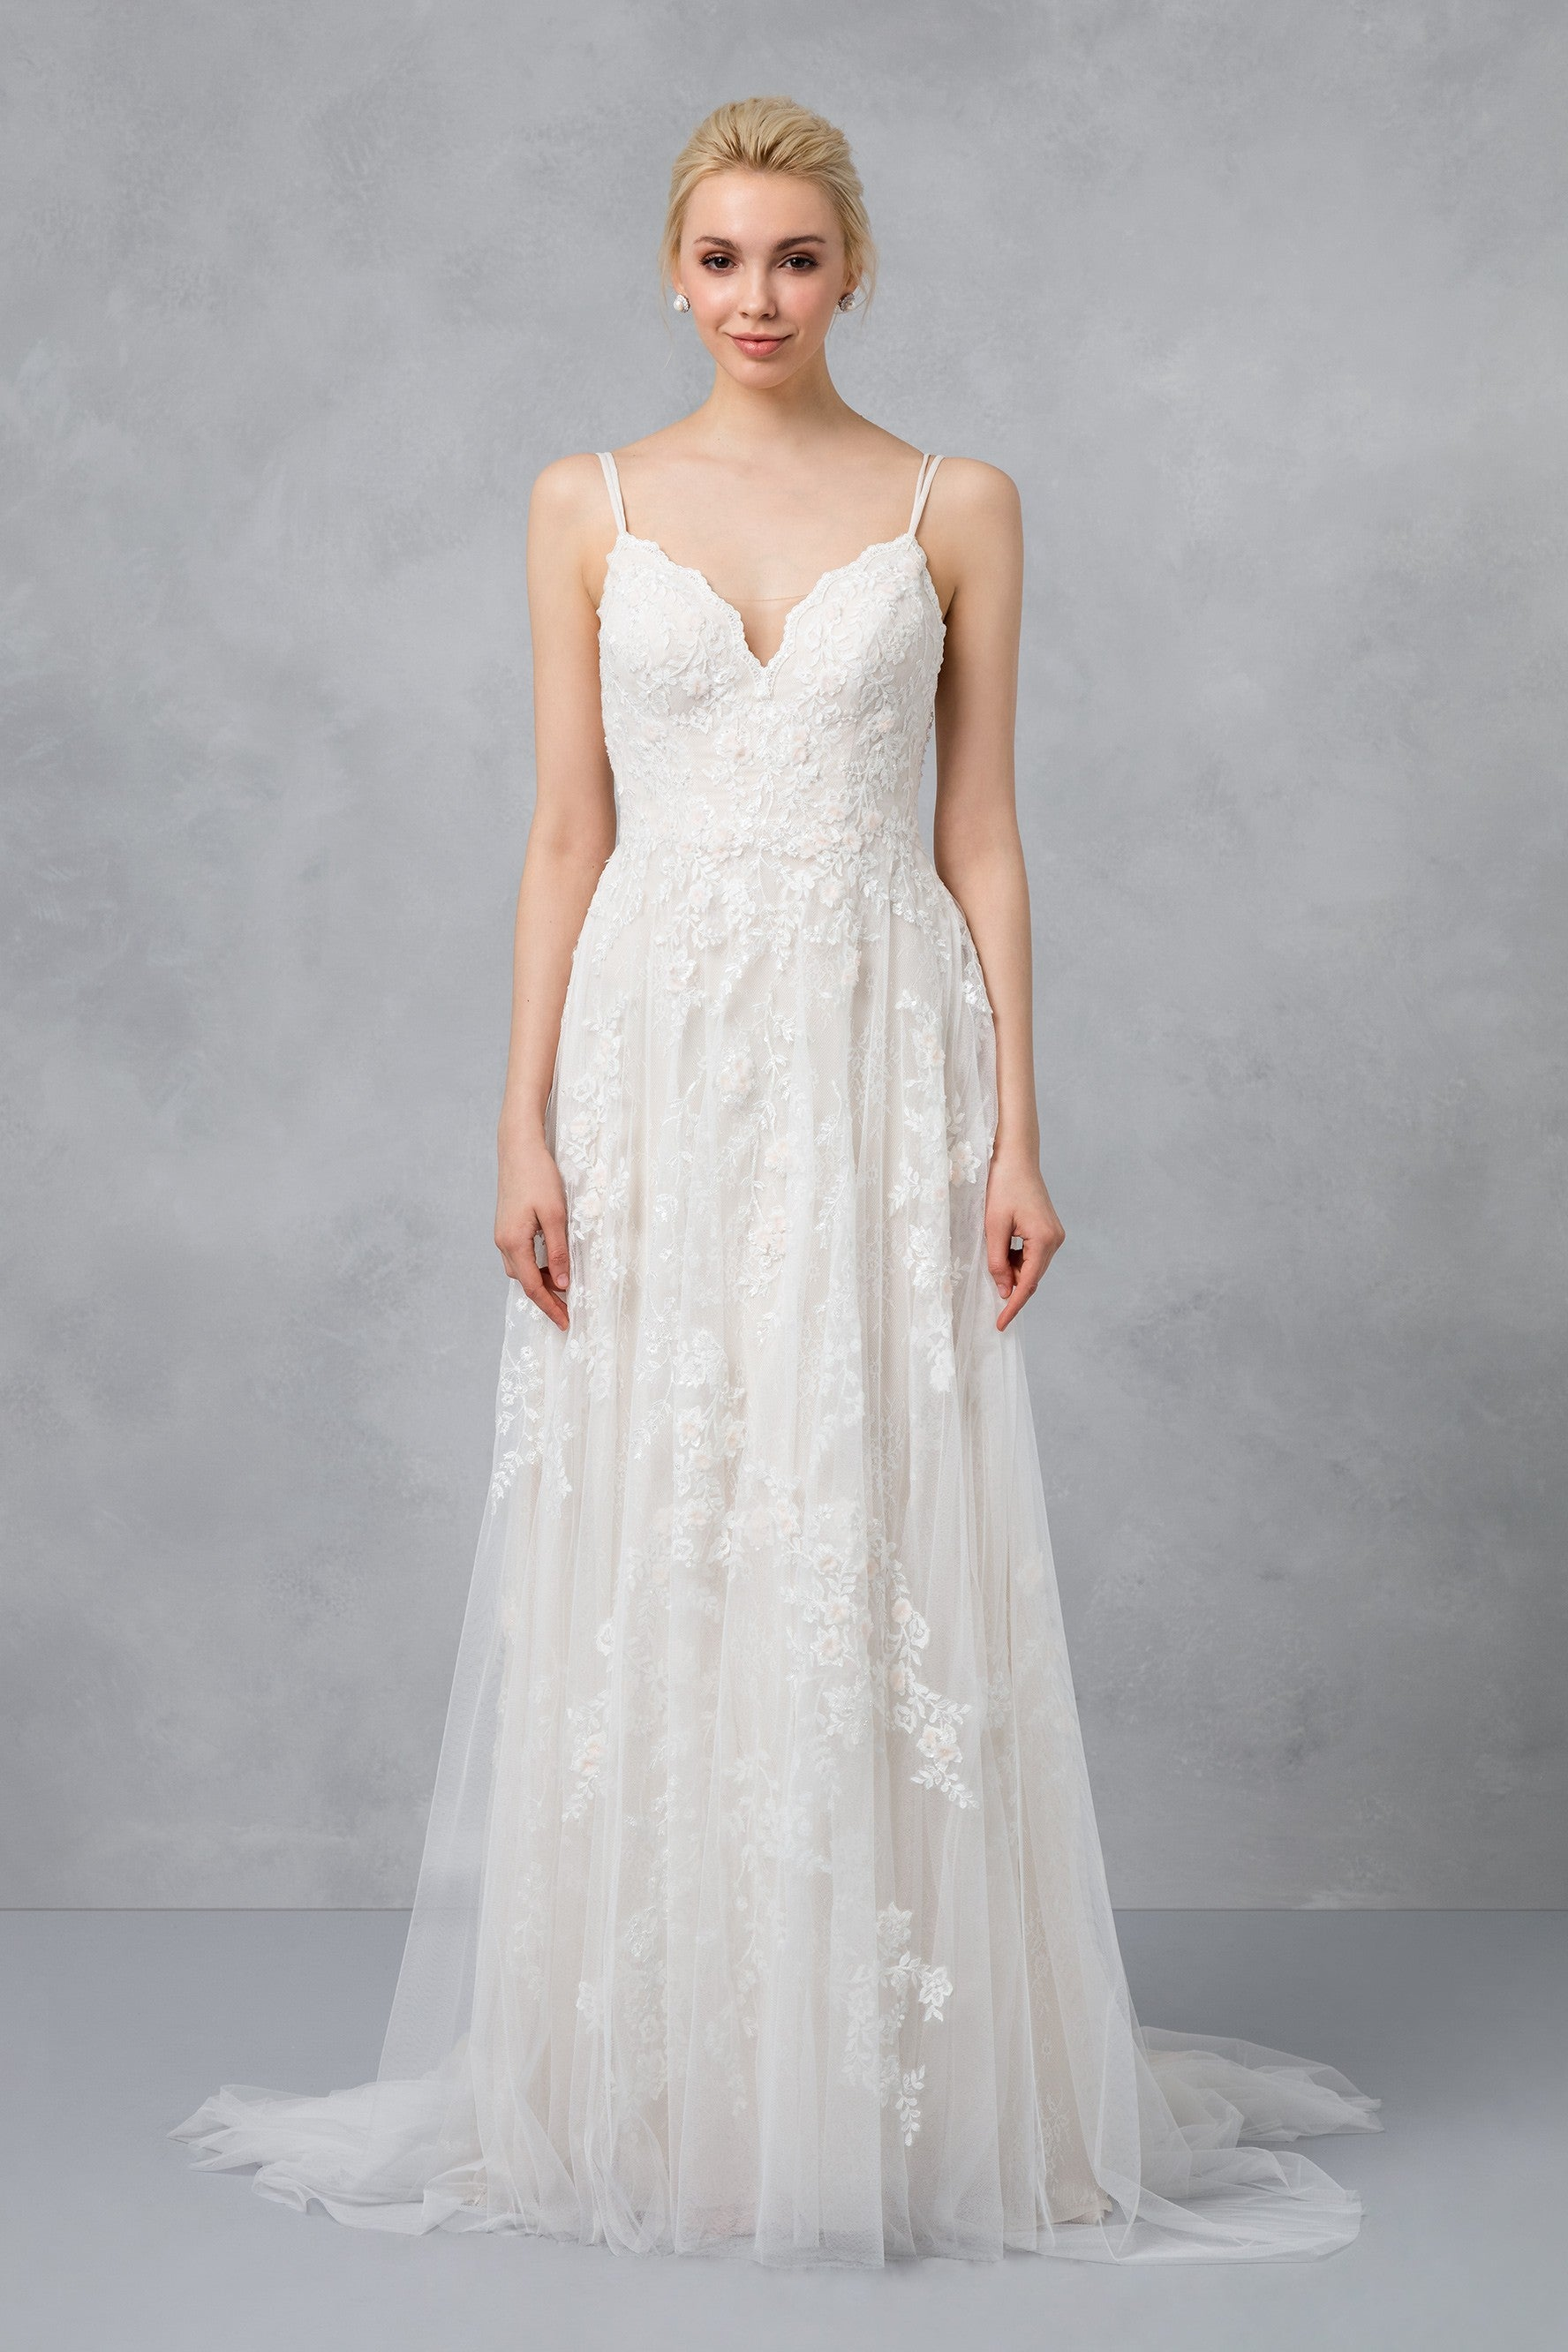 Scalloped A-Line Wedding Dress with Double Straps-MS251177